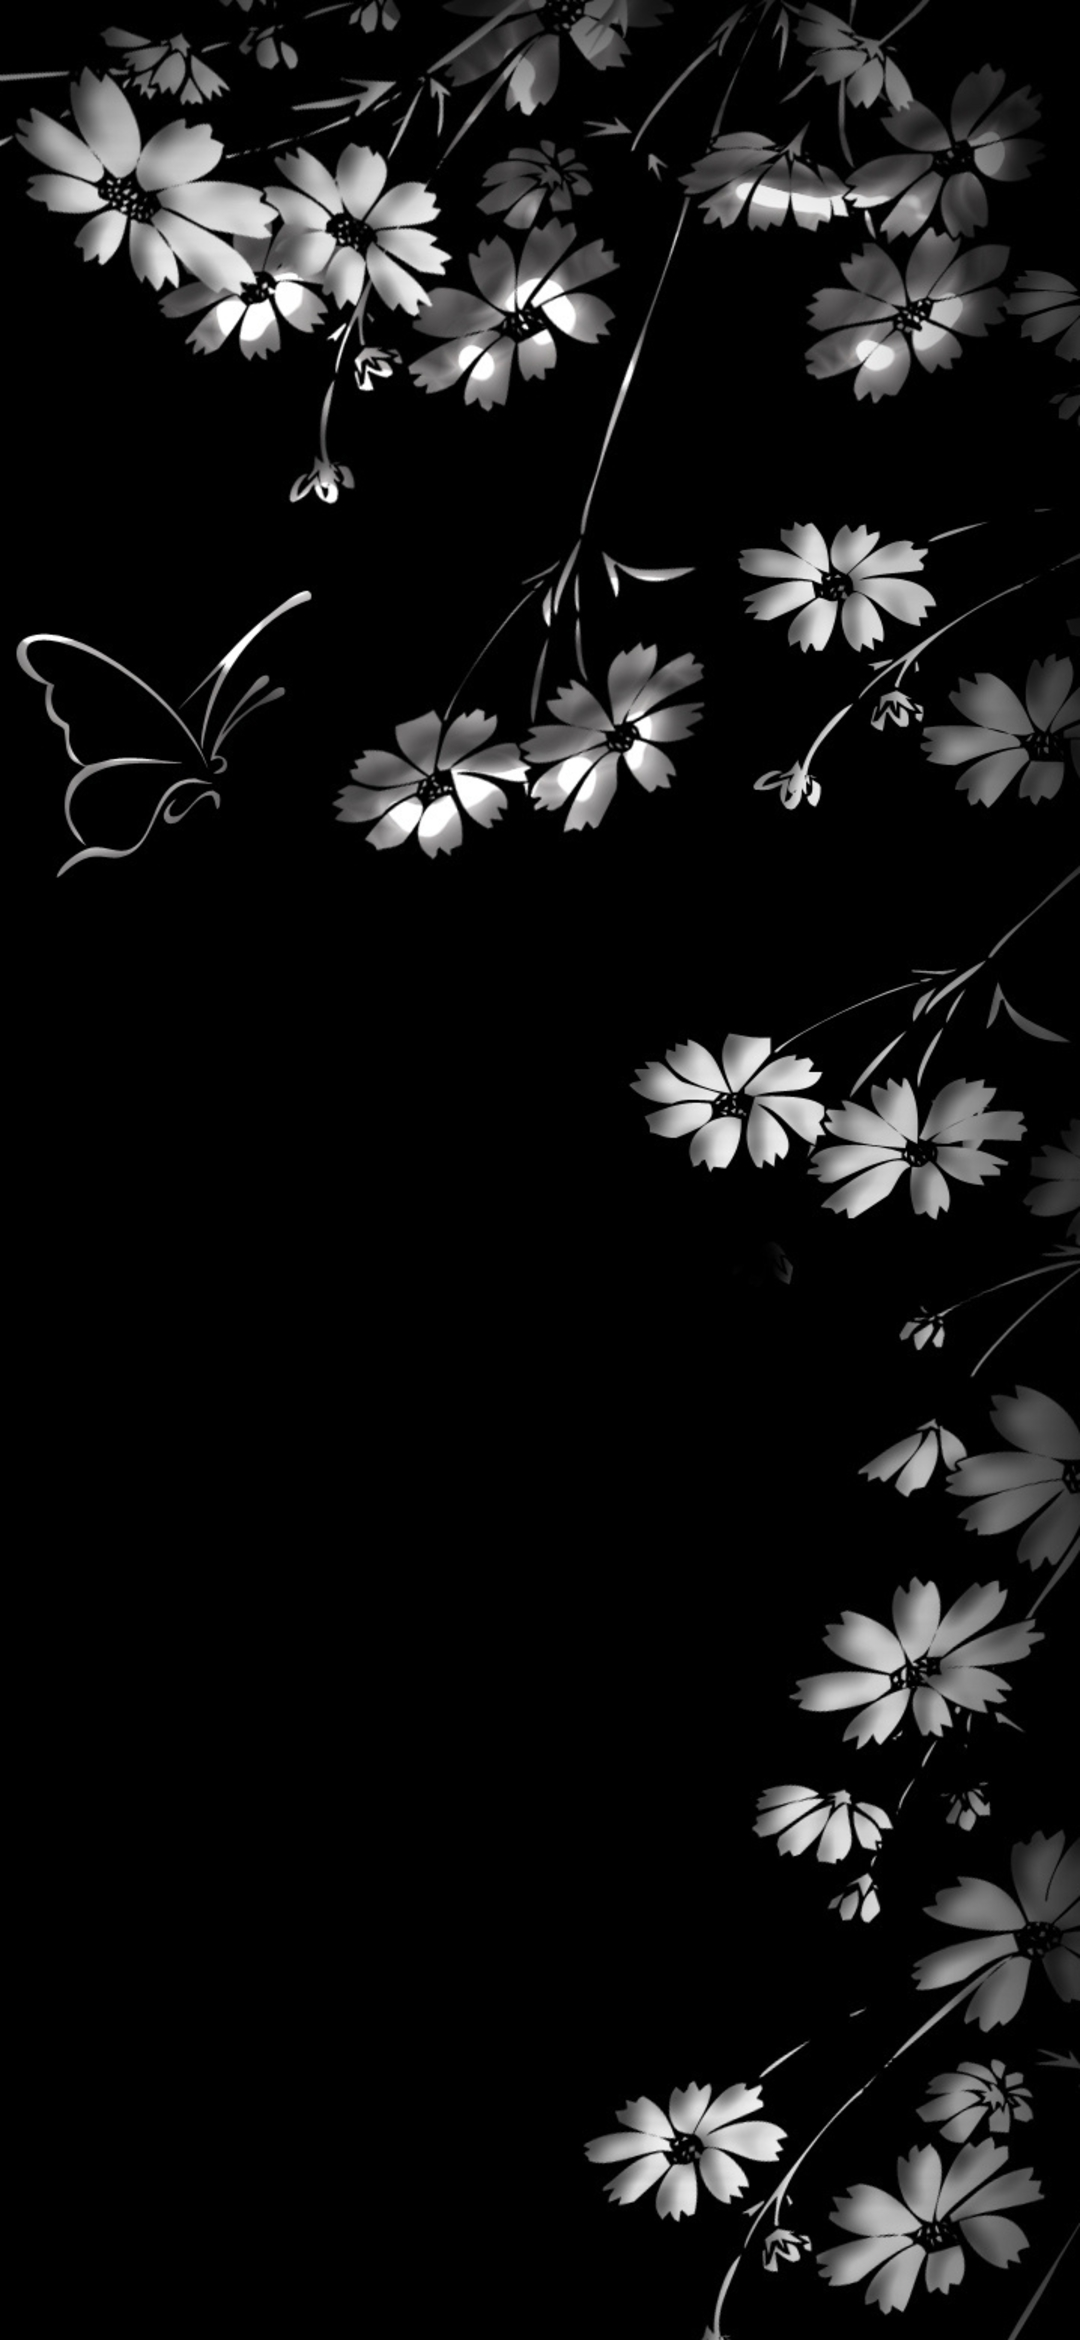 Flower Hd Phone Wallpaper 035